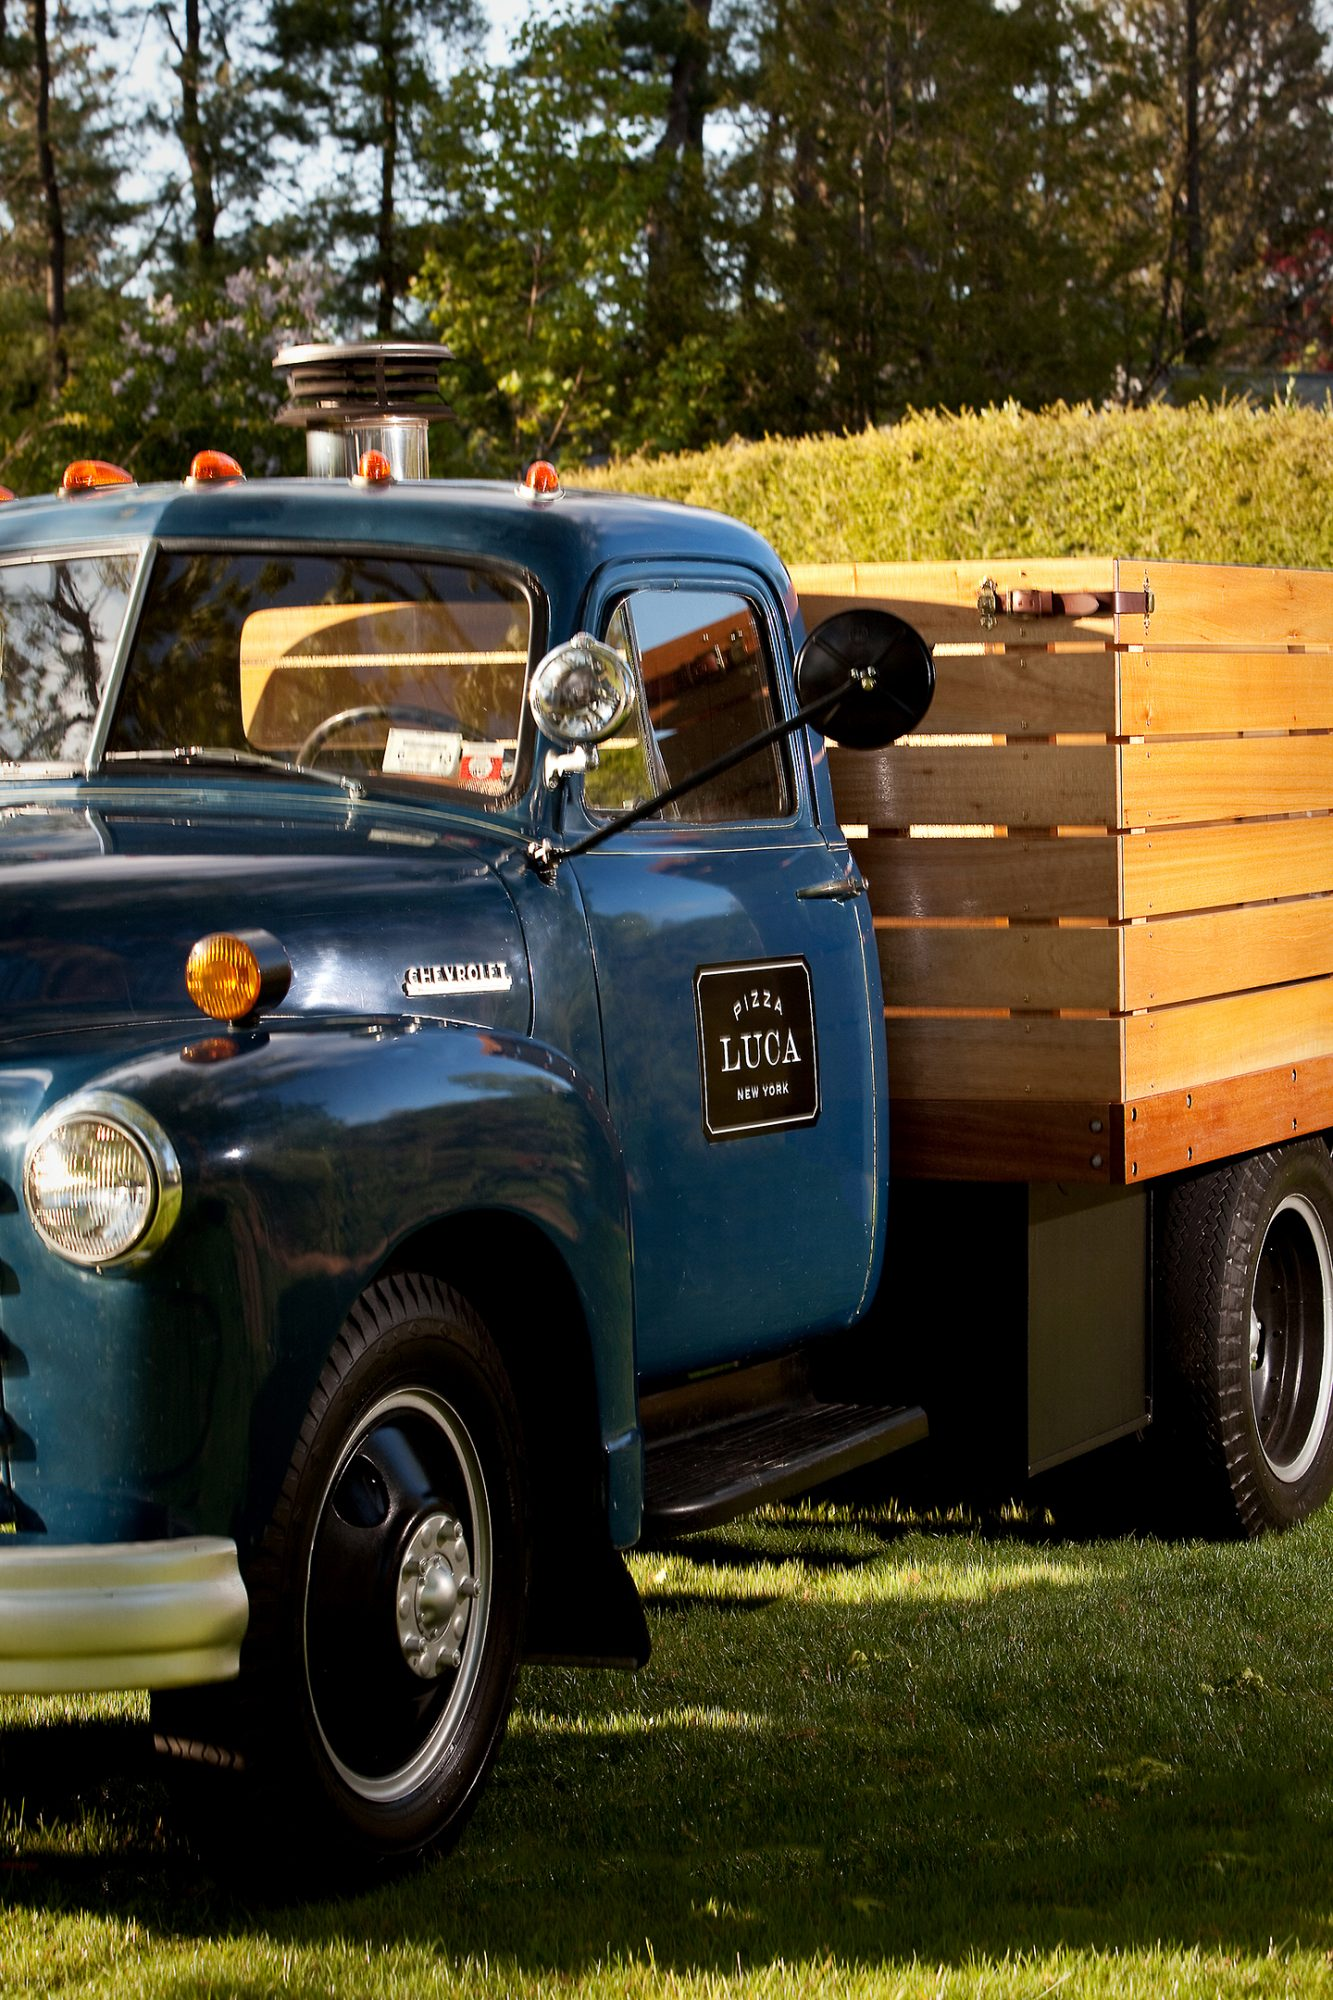 pizza luca food truck flatbed